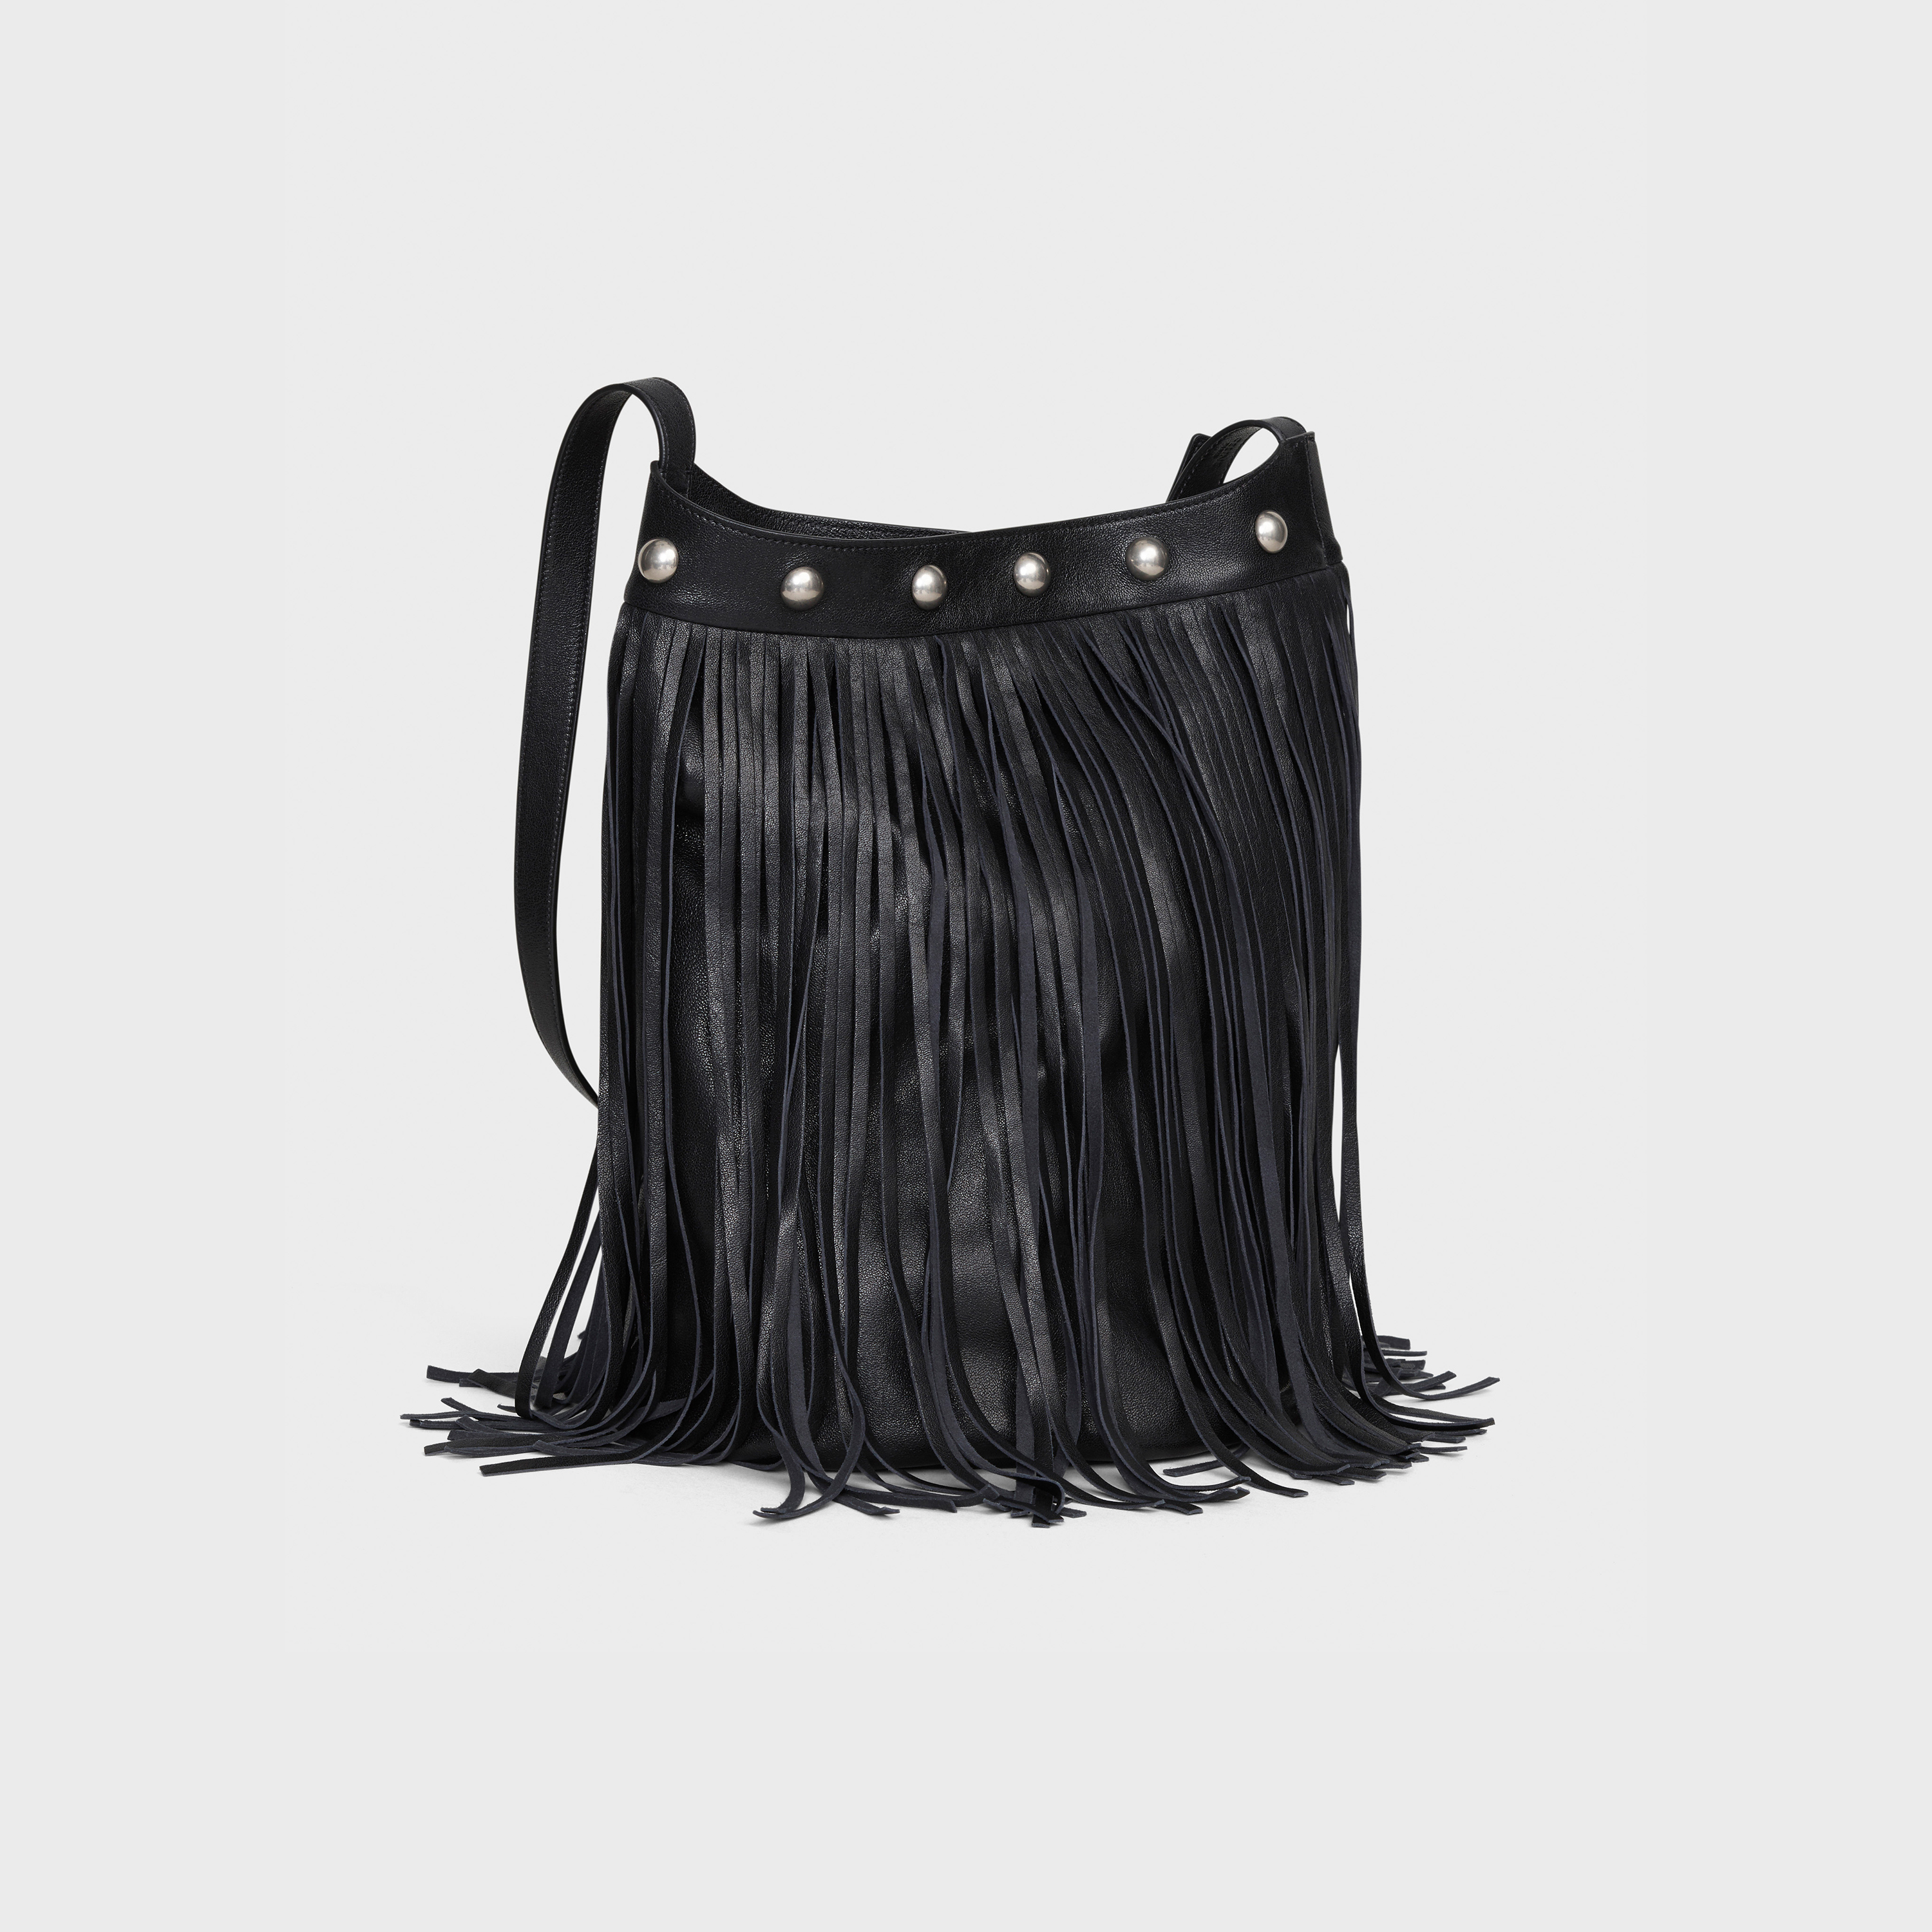 Medium Soft Bucket with Fringes and Studs in lambskin | CELINE